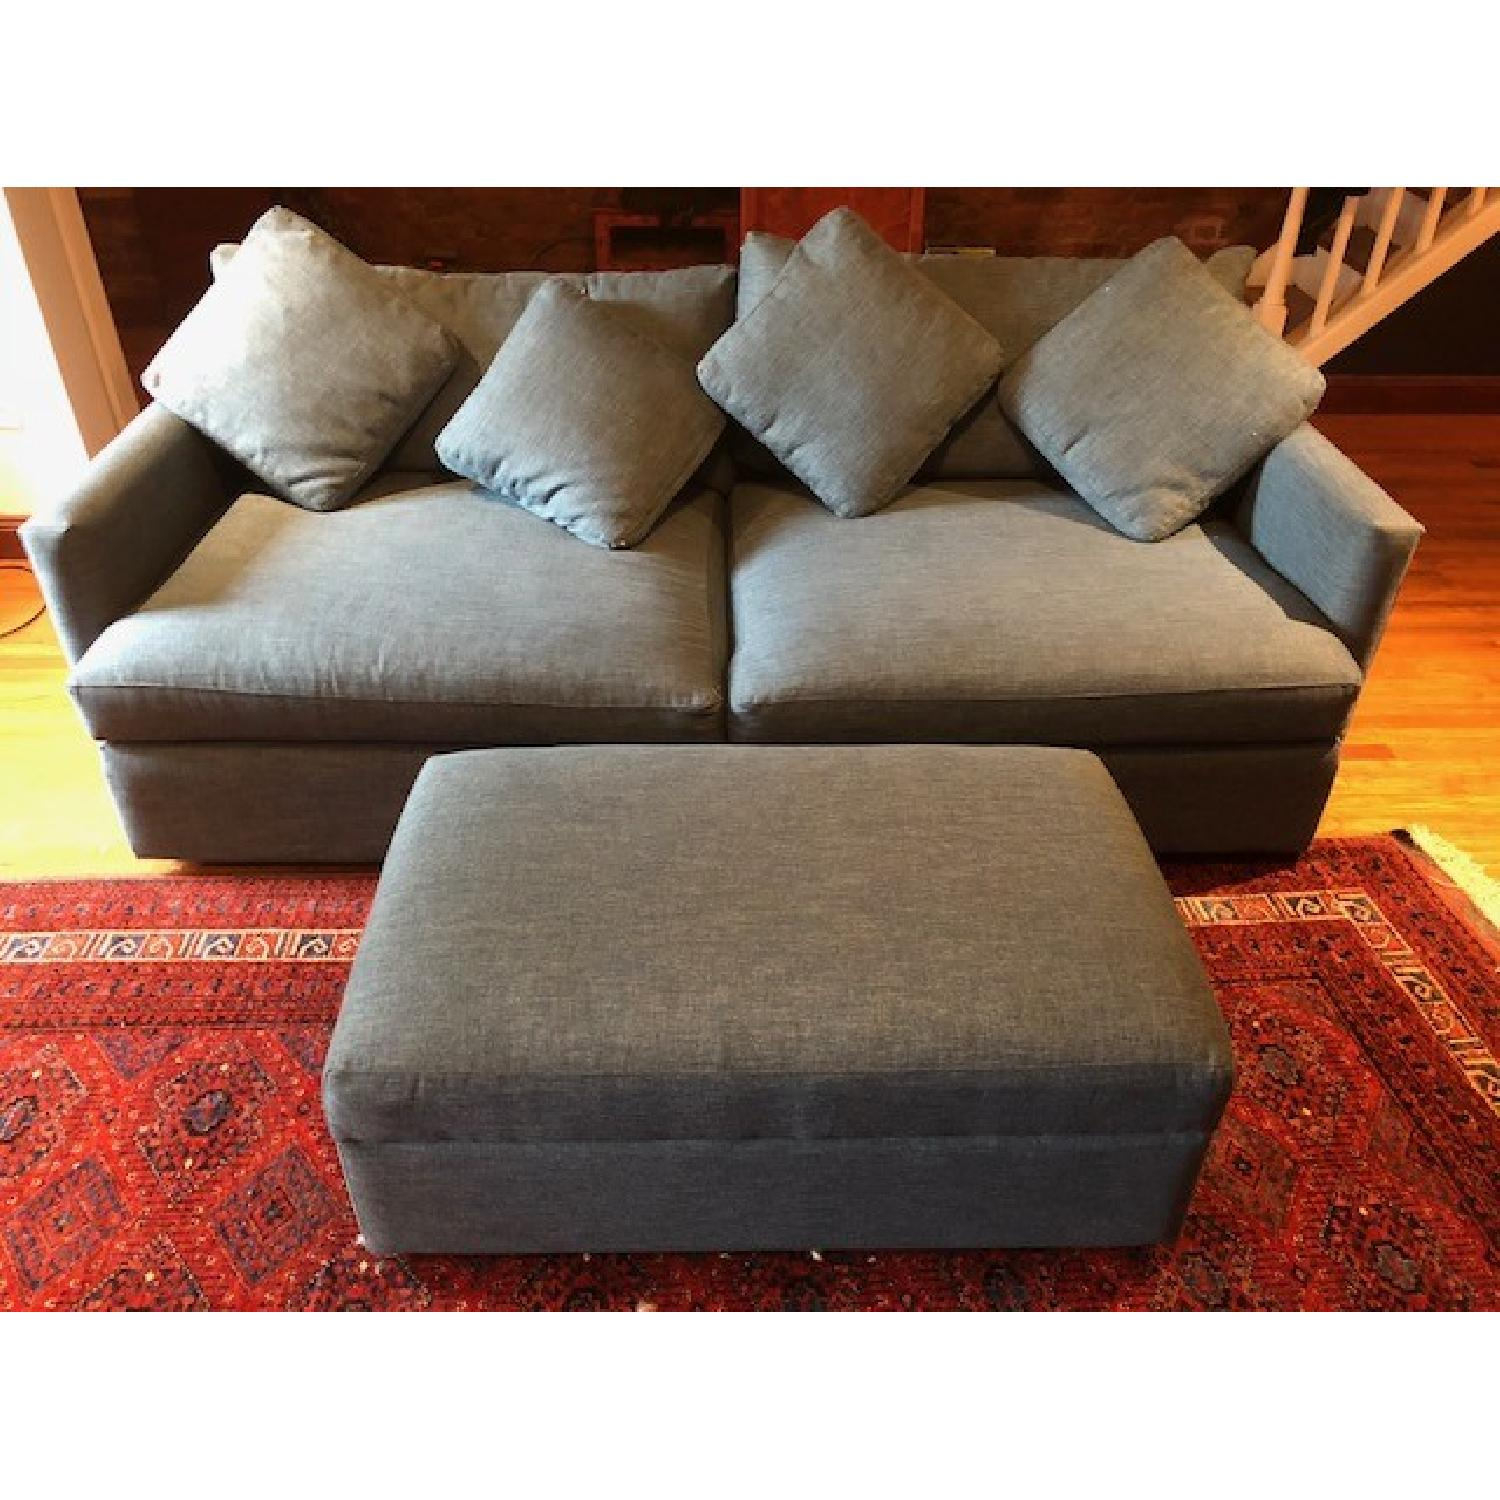 Crate & Barrel Lounge II Apartment Sofa & Ottoman-13